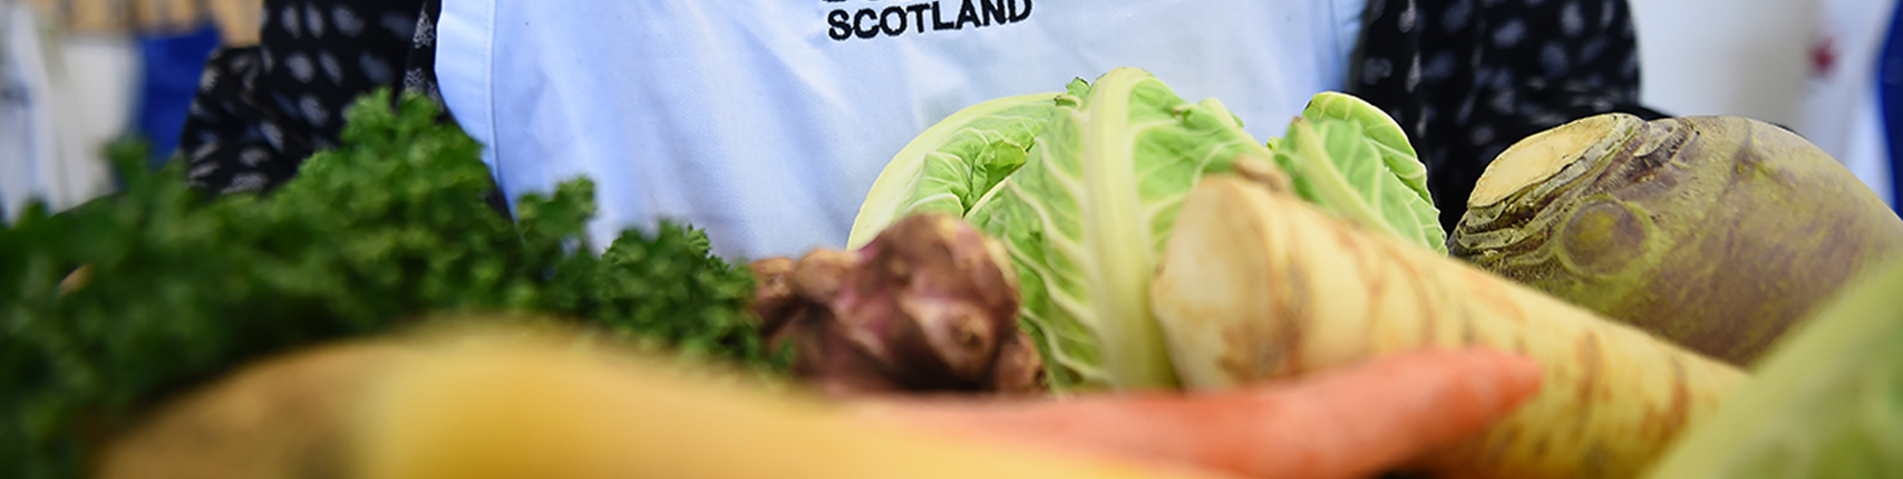 Food For Life Scotland general 3.png